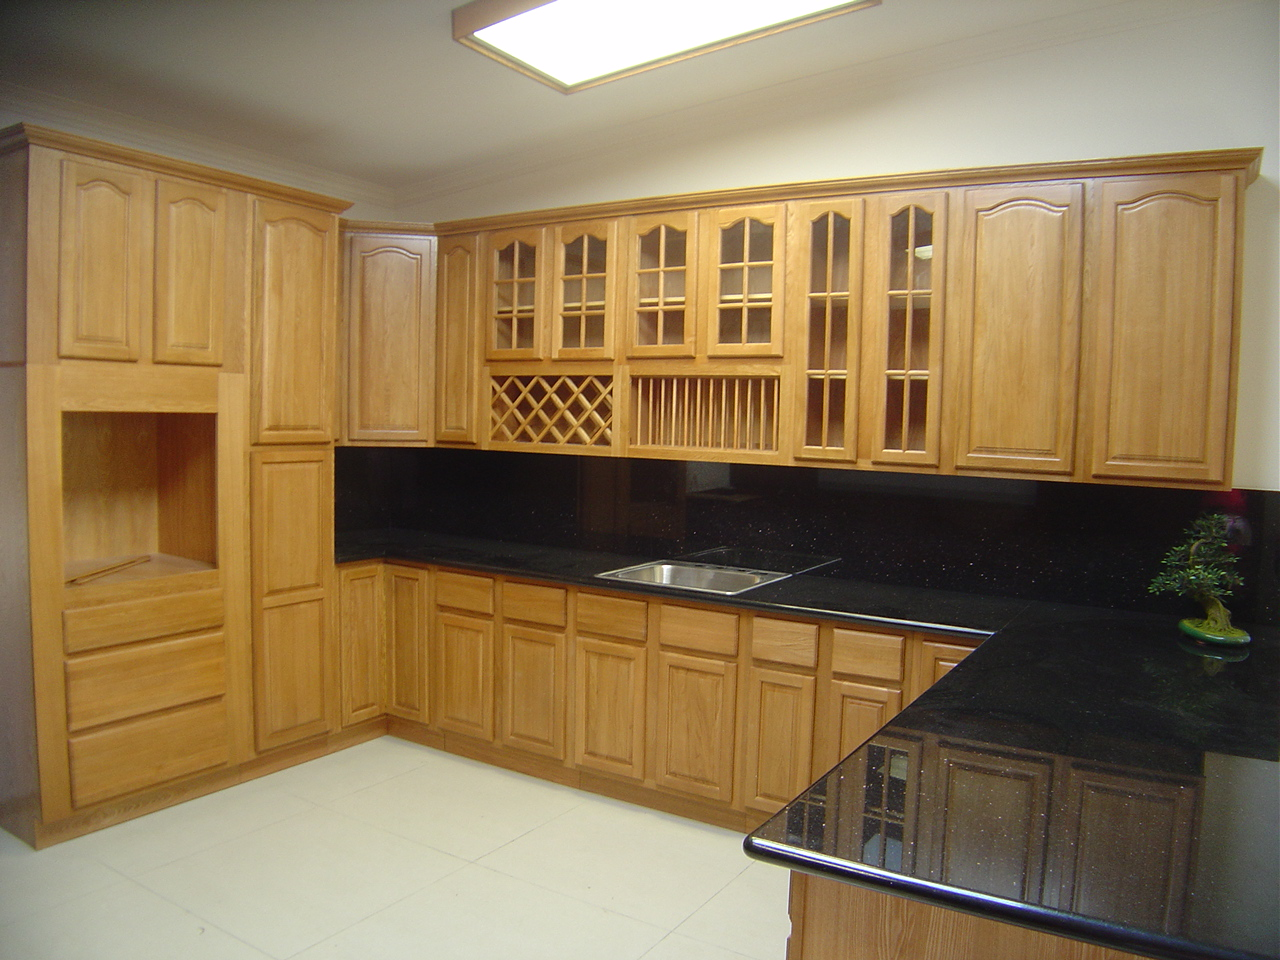 Remarkable Kitchen Design Ideas with Oak Cabinets 1280 x 960 · 551 kB · jpeg